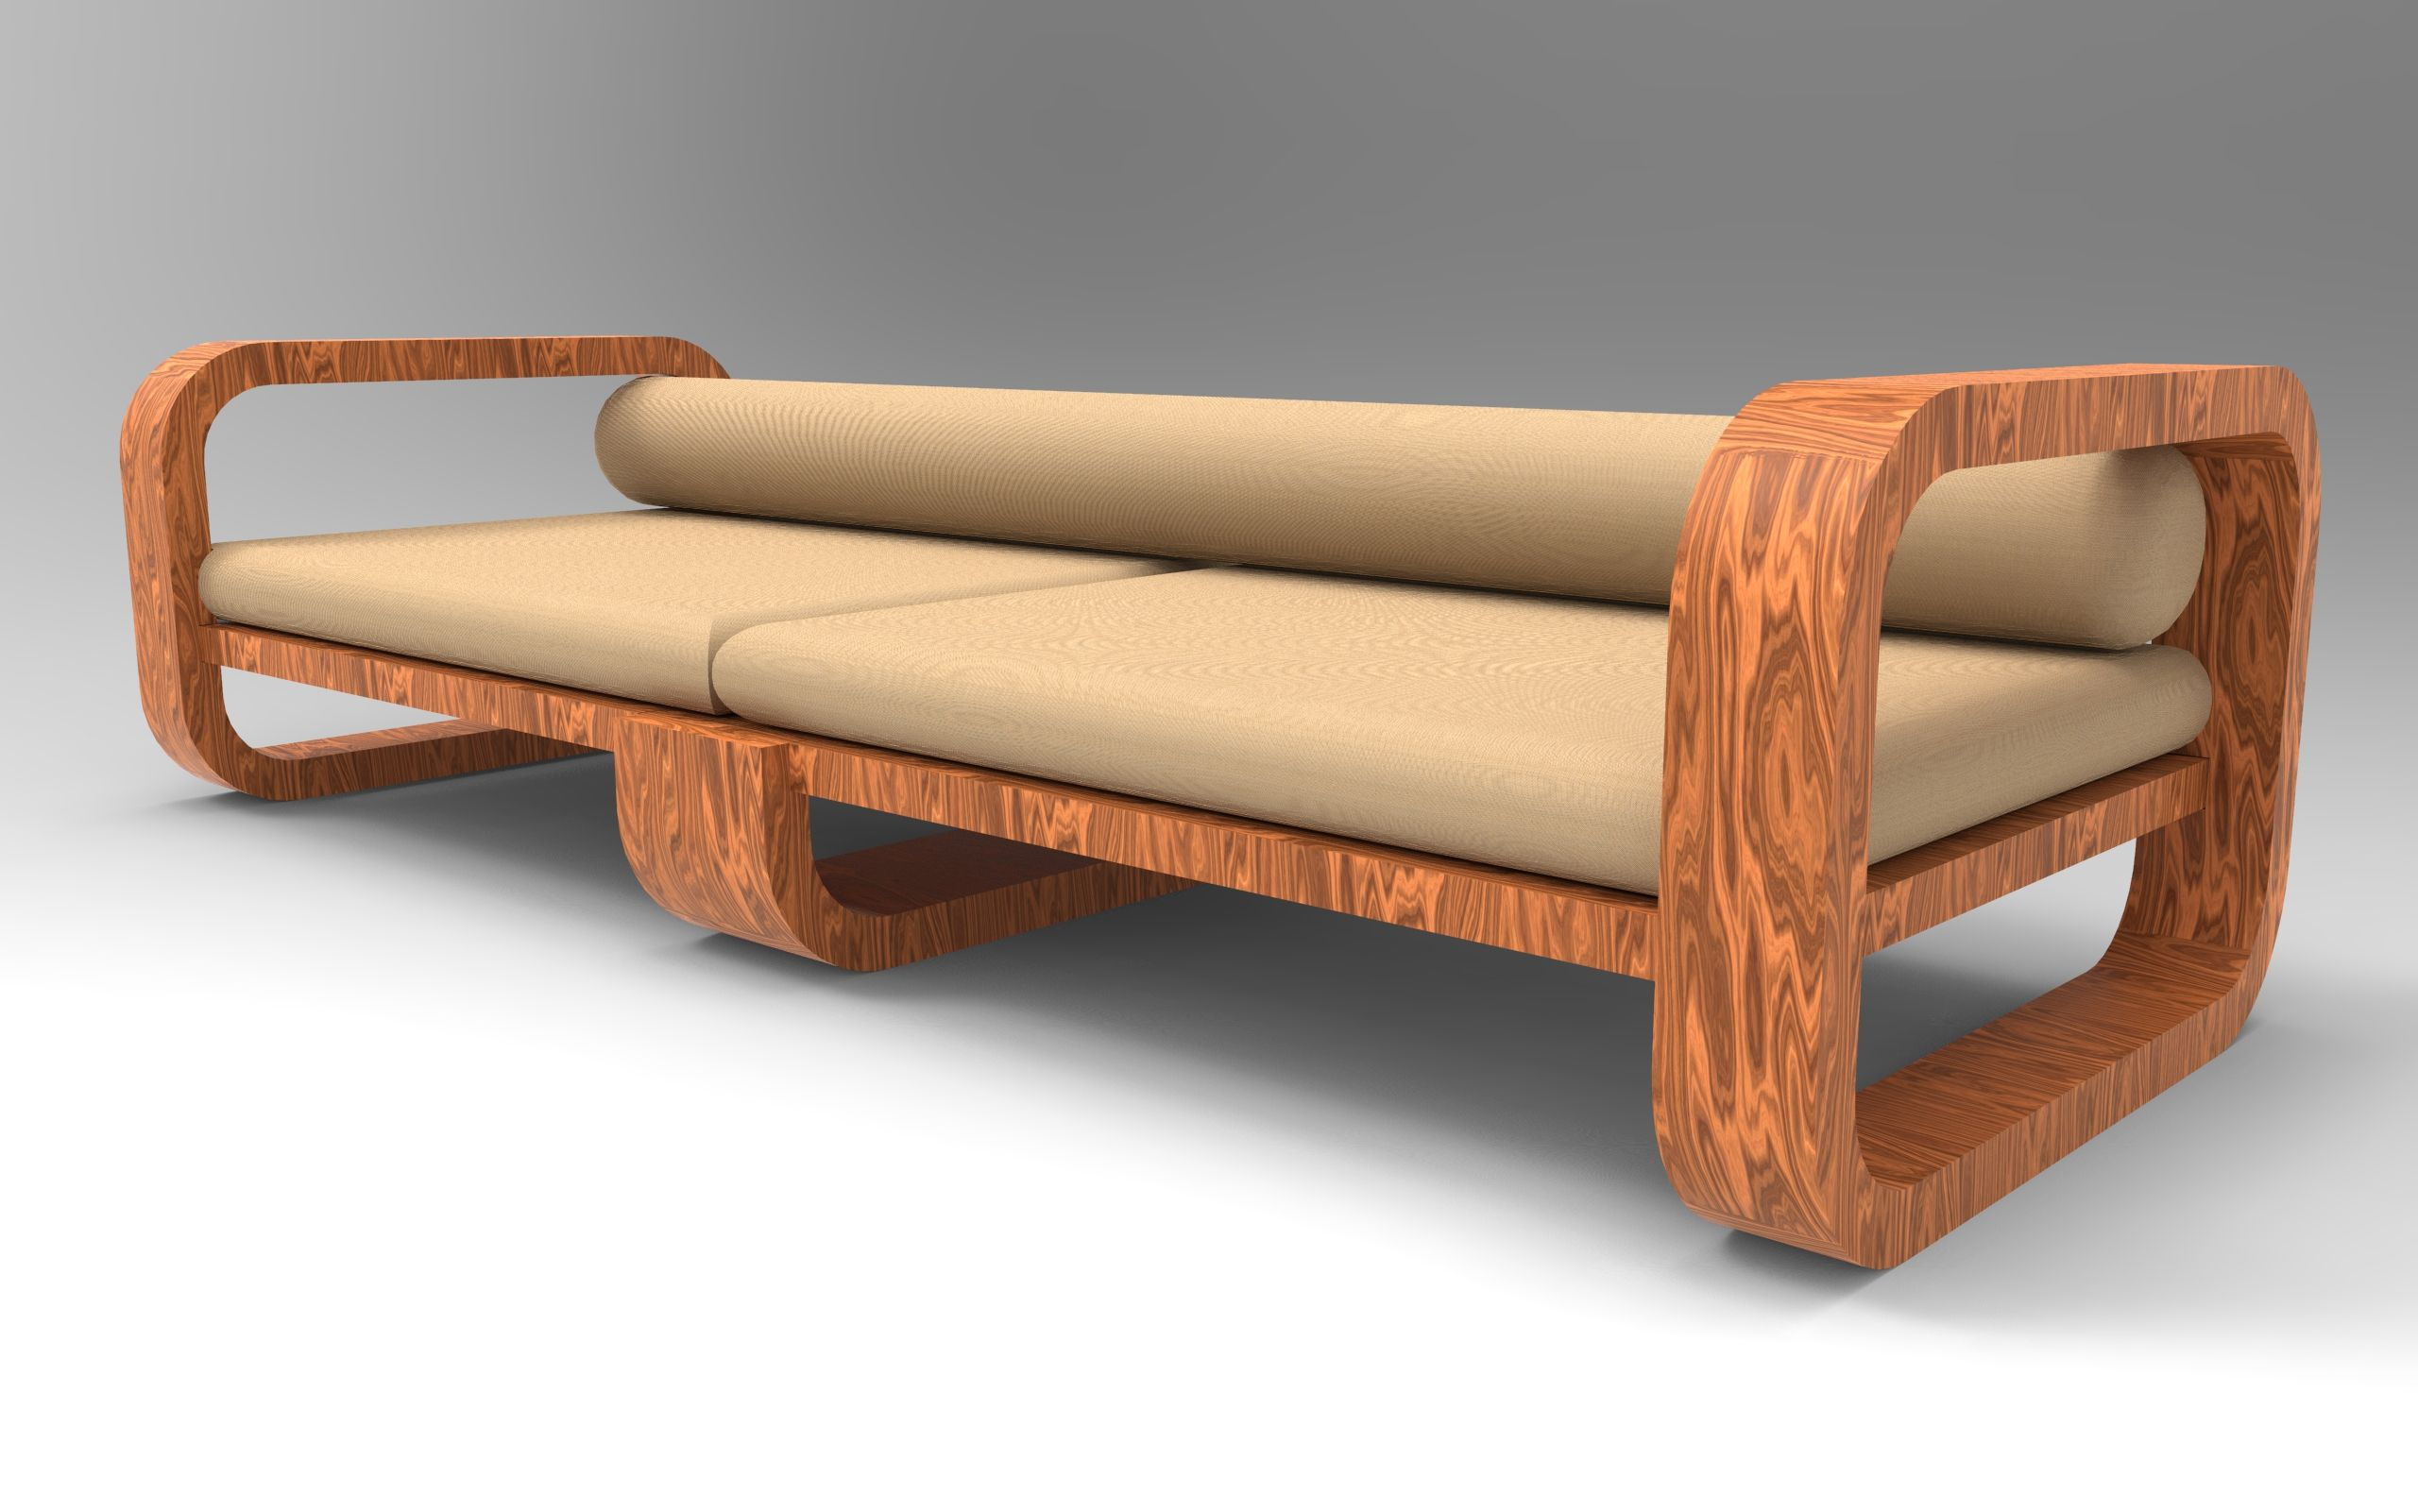 Couch--design-02-mesmo-lucas-lira-fab-3500-3500